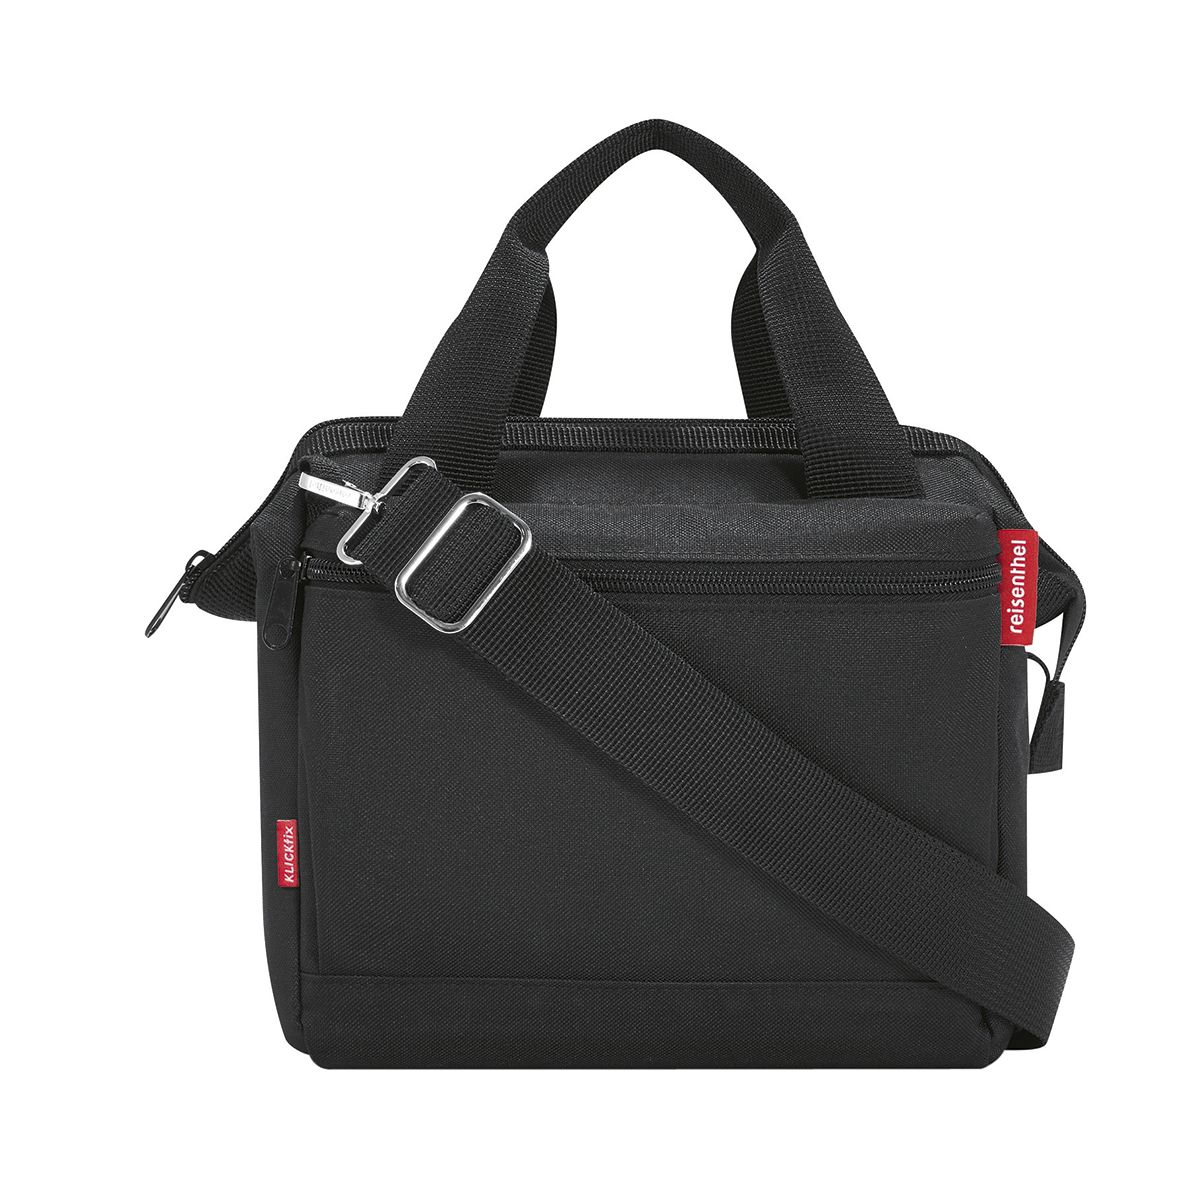 Roomy Handlebar Bag with Handlebar Adapter